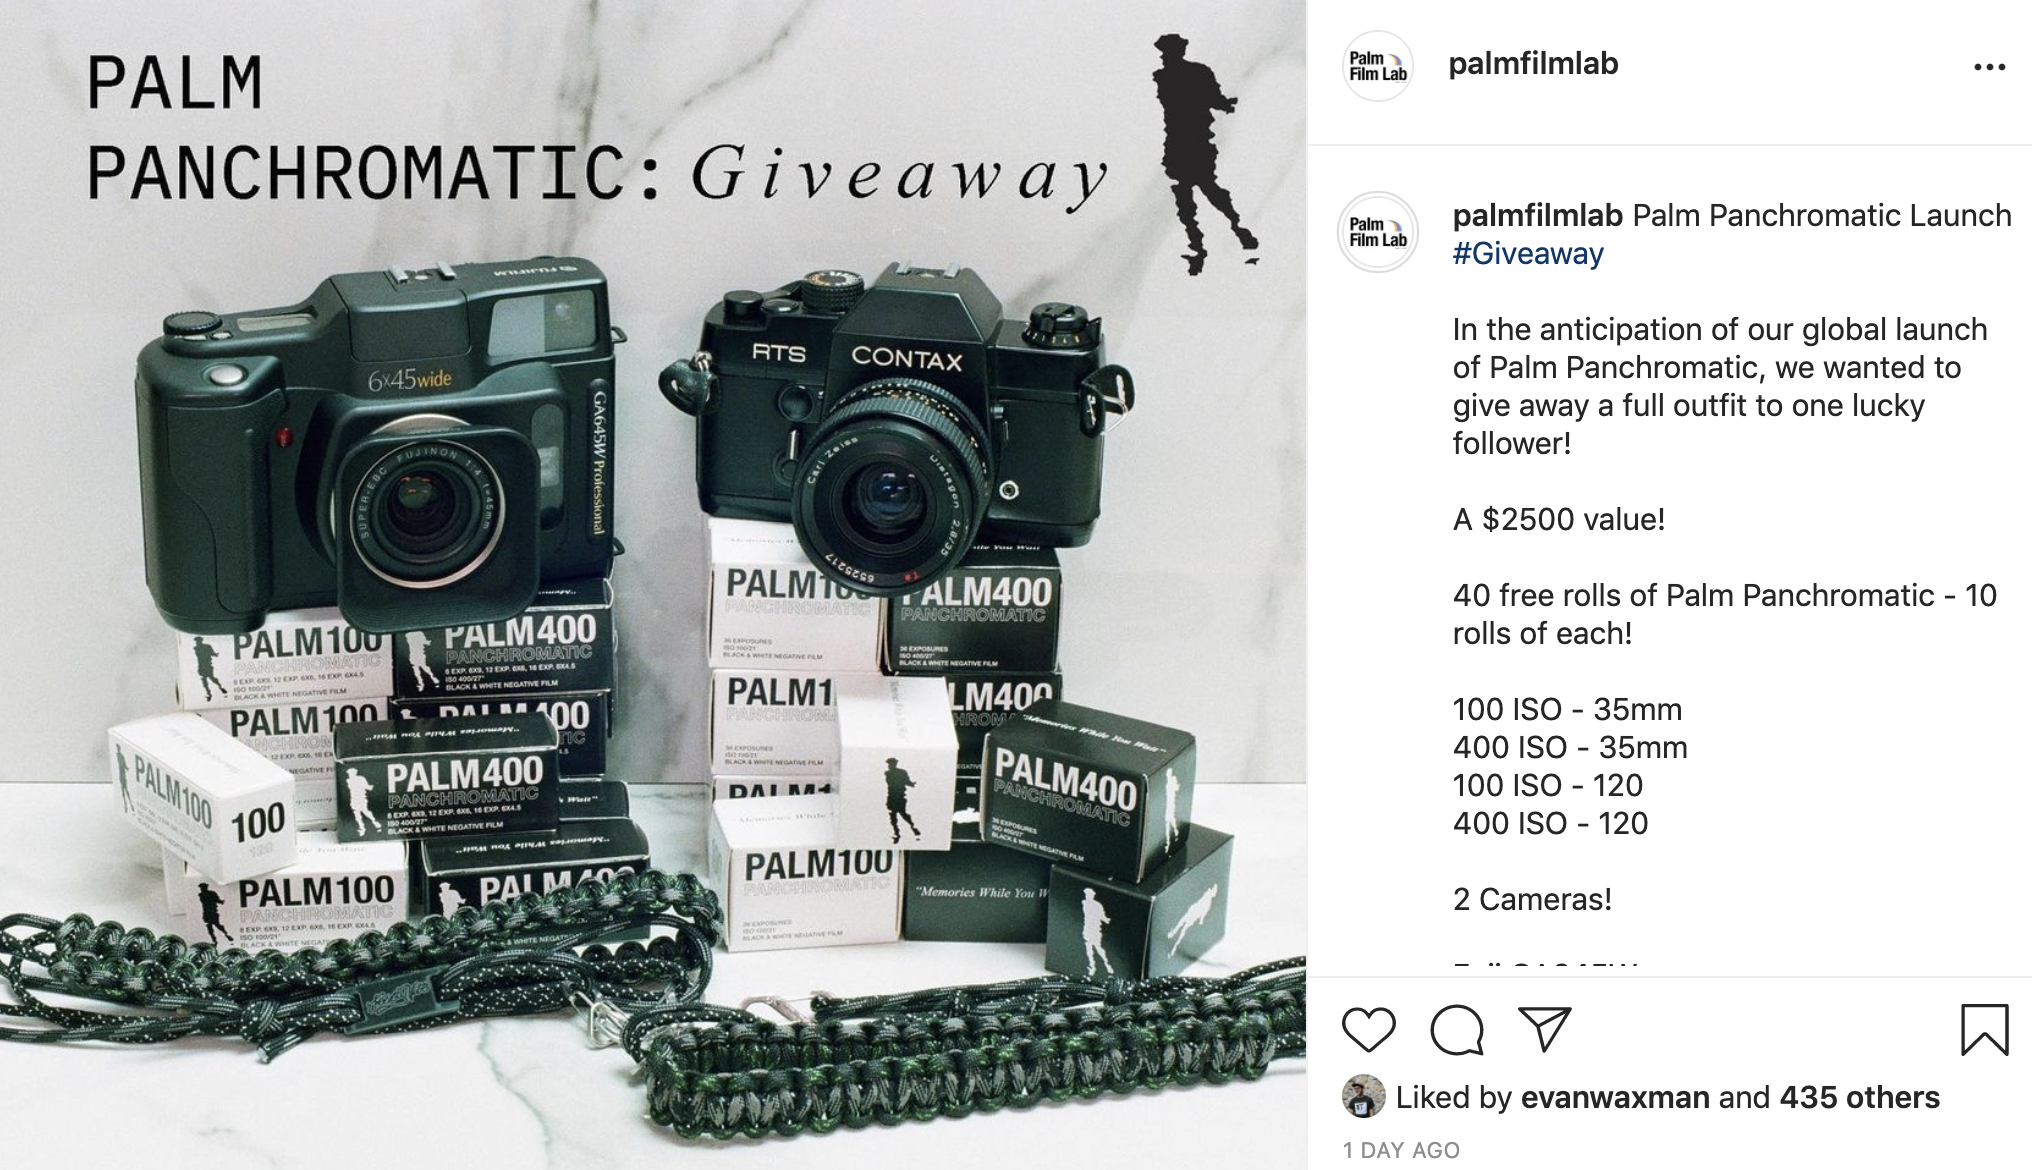 Post showing film and cameras (Pic: (Pic: Palm Film Lab/Instagram)